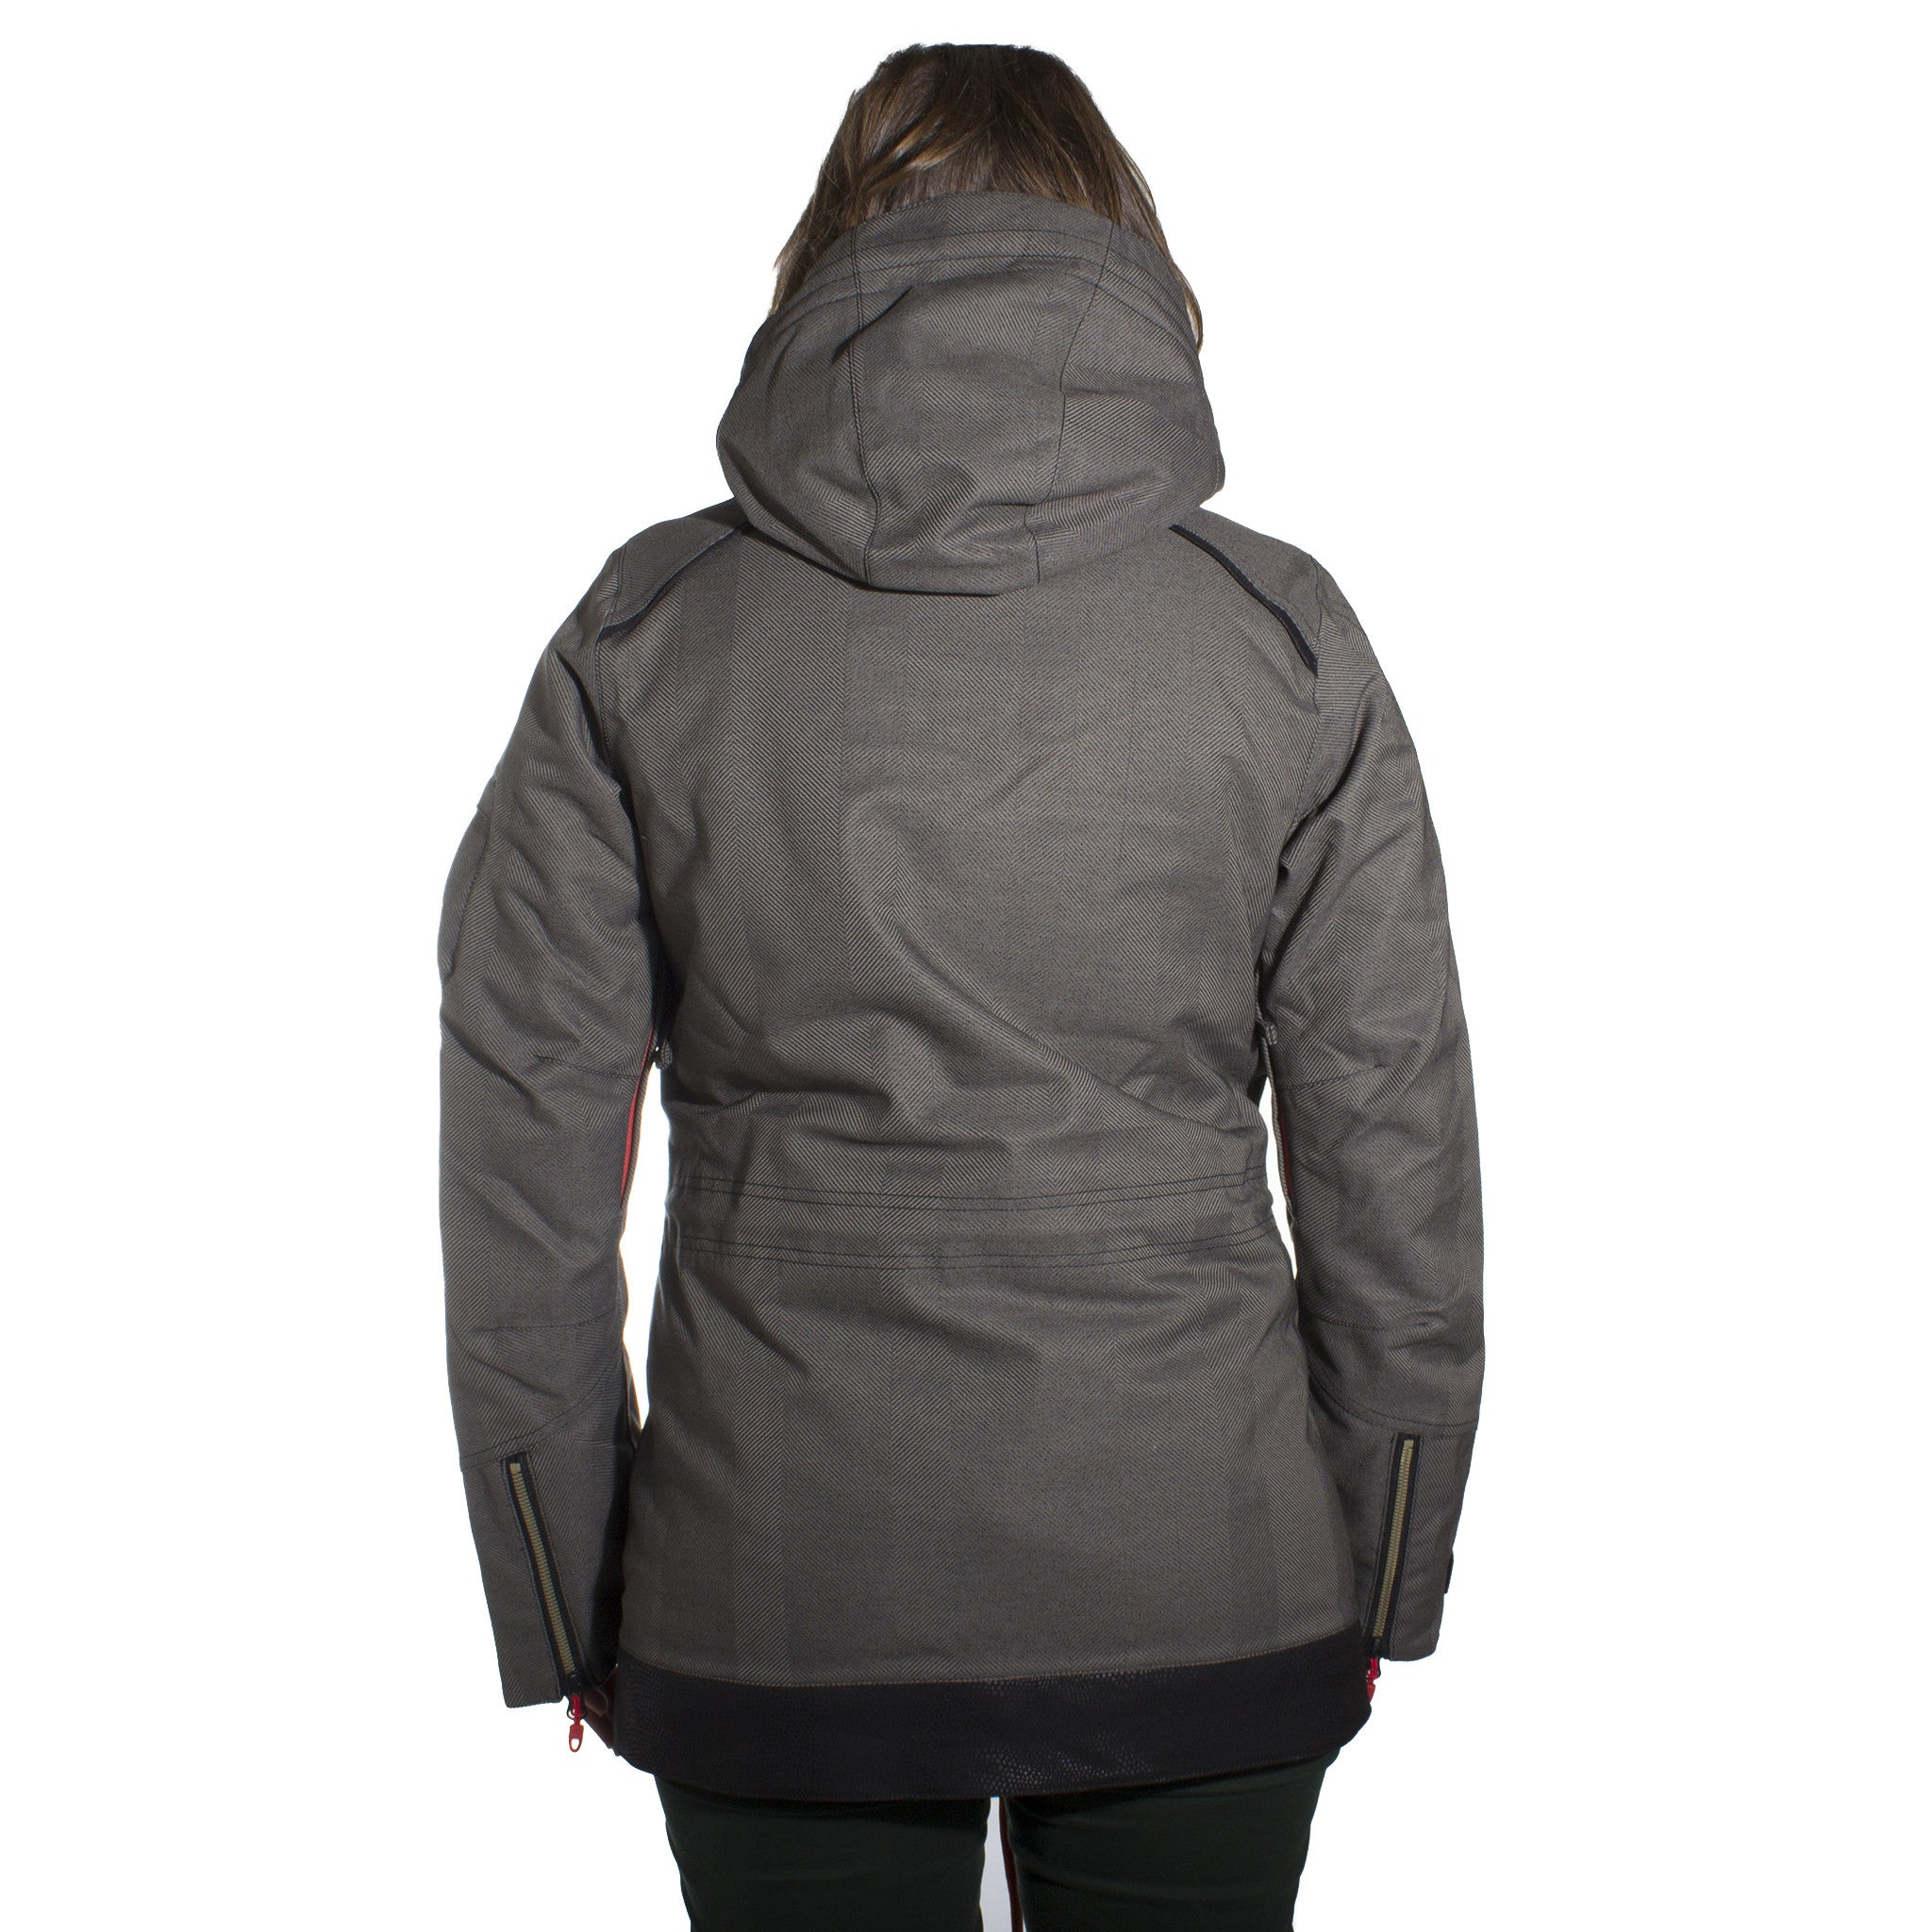 Sparkle Jacket Black Out Womens - Stoked Boardshop  - 3